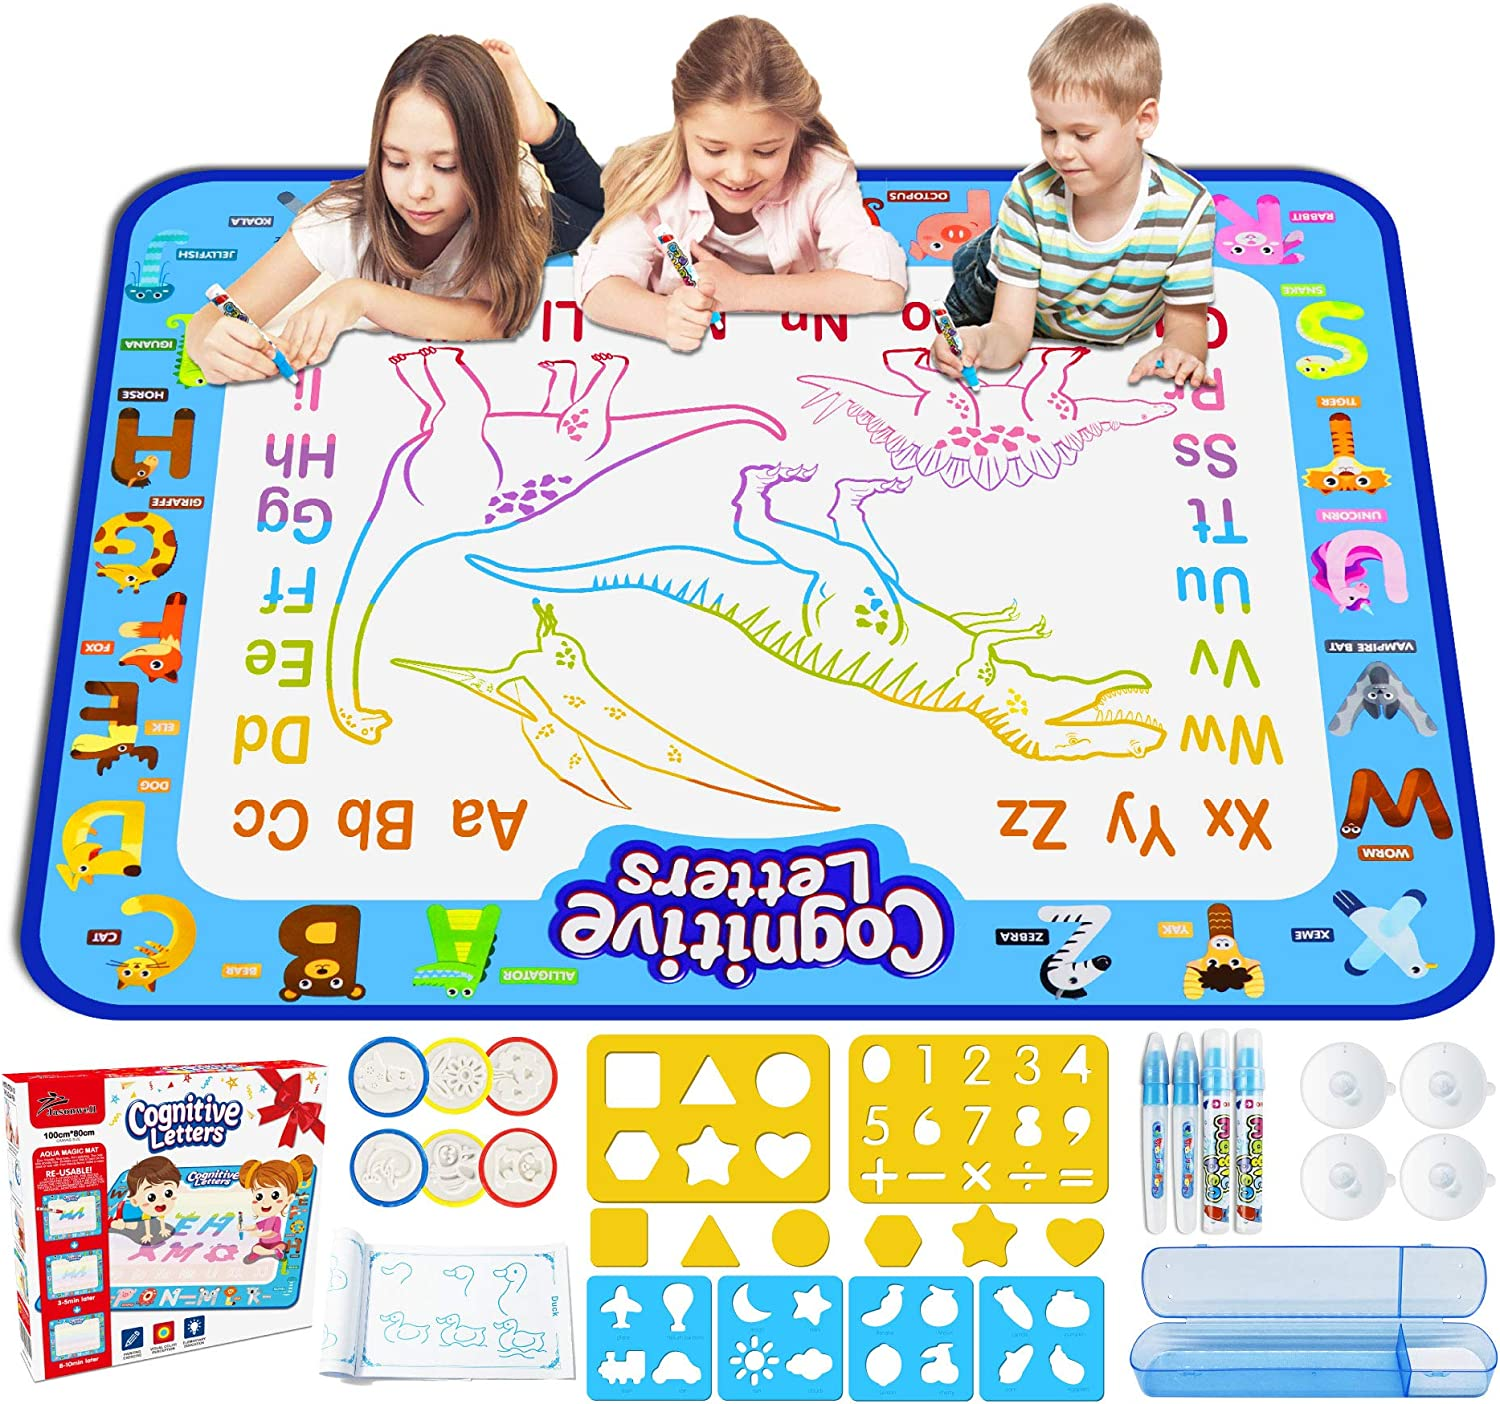 WisToyz Doodle Mat Spaceship Cognitive Letters Aqua Mat Waterproof Play Mat for Kids 40 X 32 Inches Doodle Drawing Mat with Squeeze Toys Educational Toys for Kids Toddlers Boys Girls Age 3-Year and Up